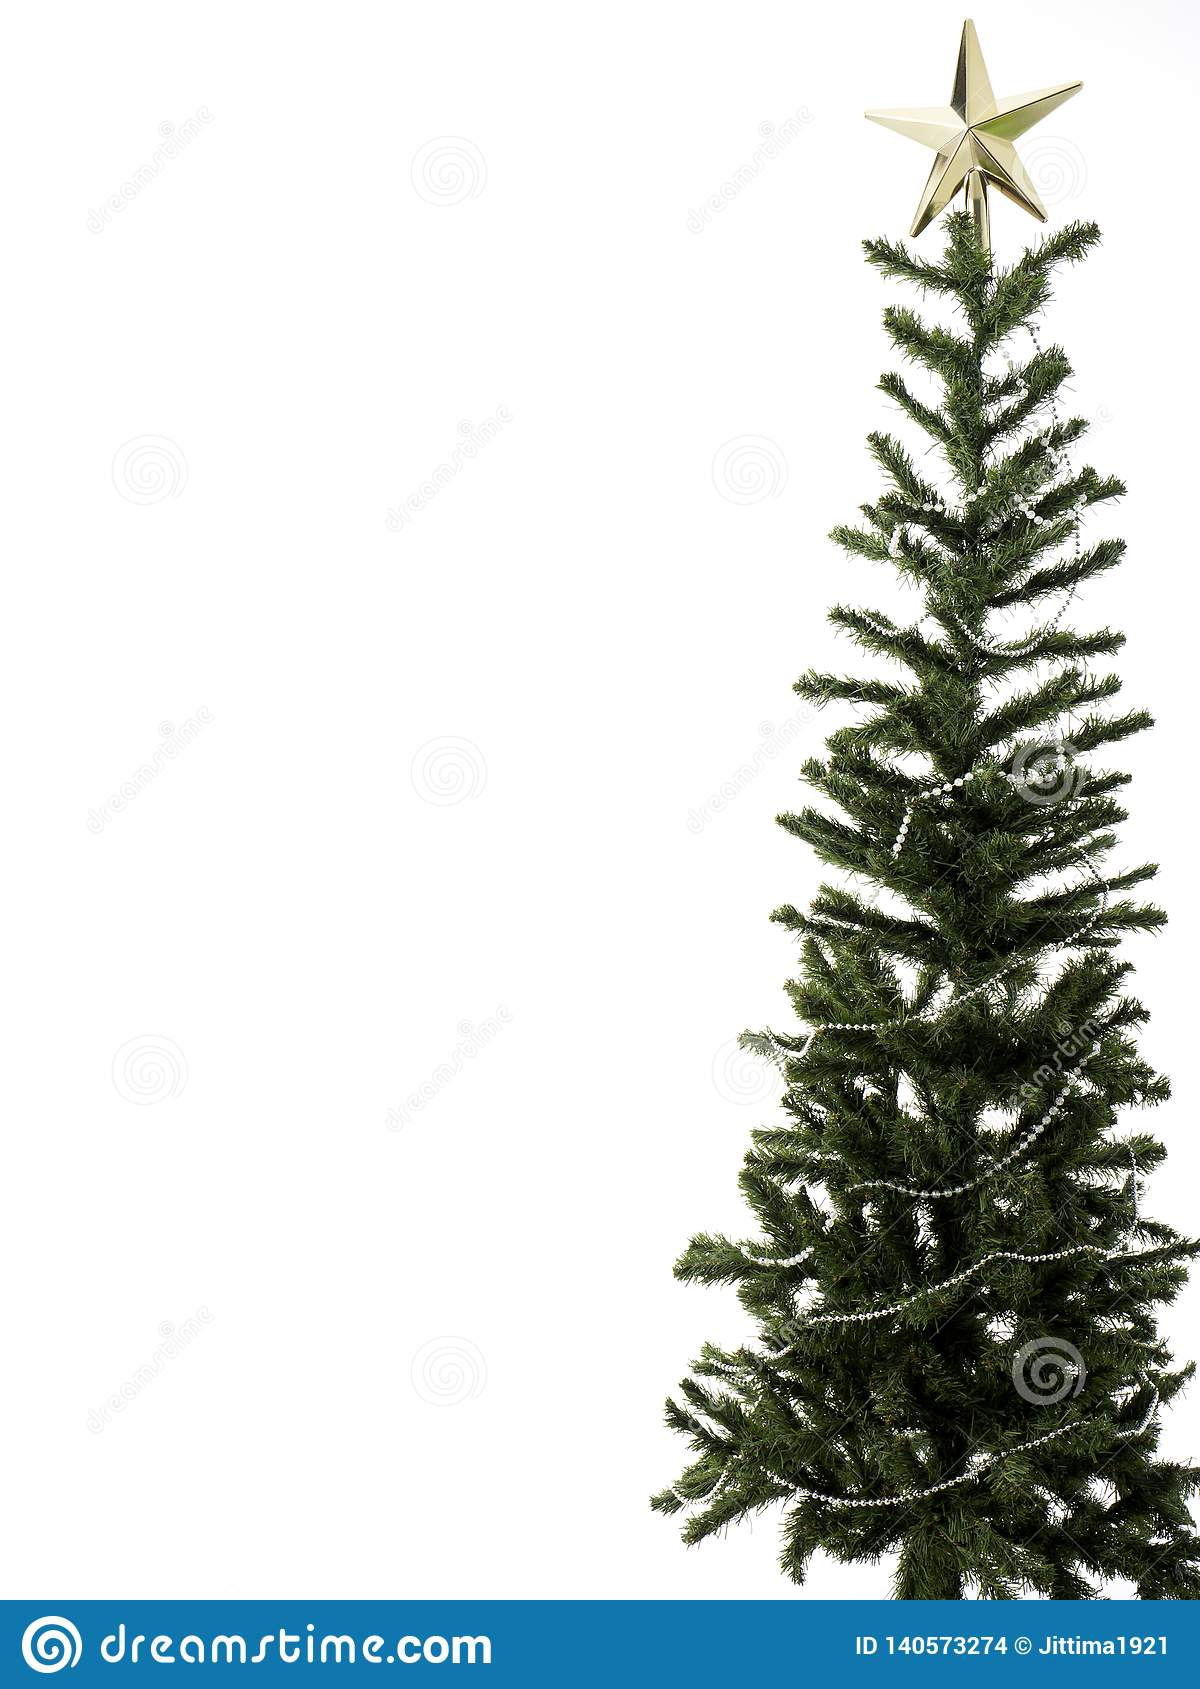 Christmas tree decorations on a white background. close-up